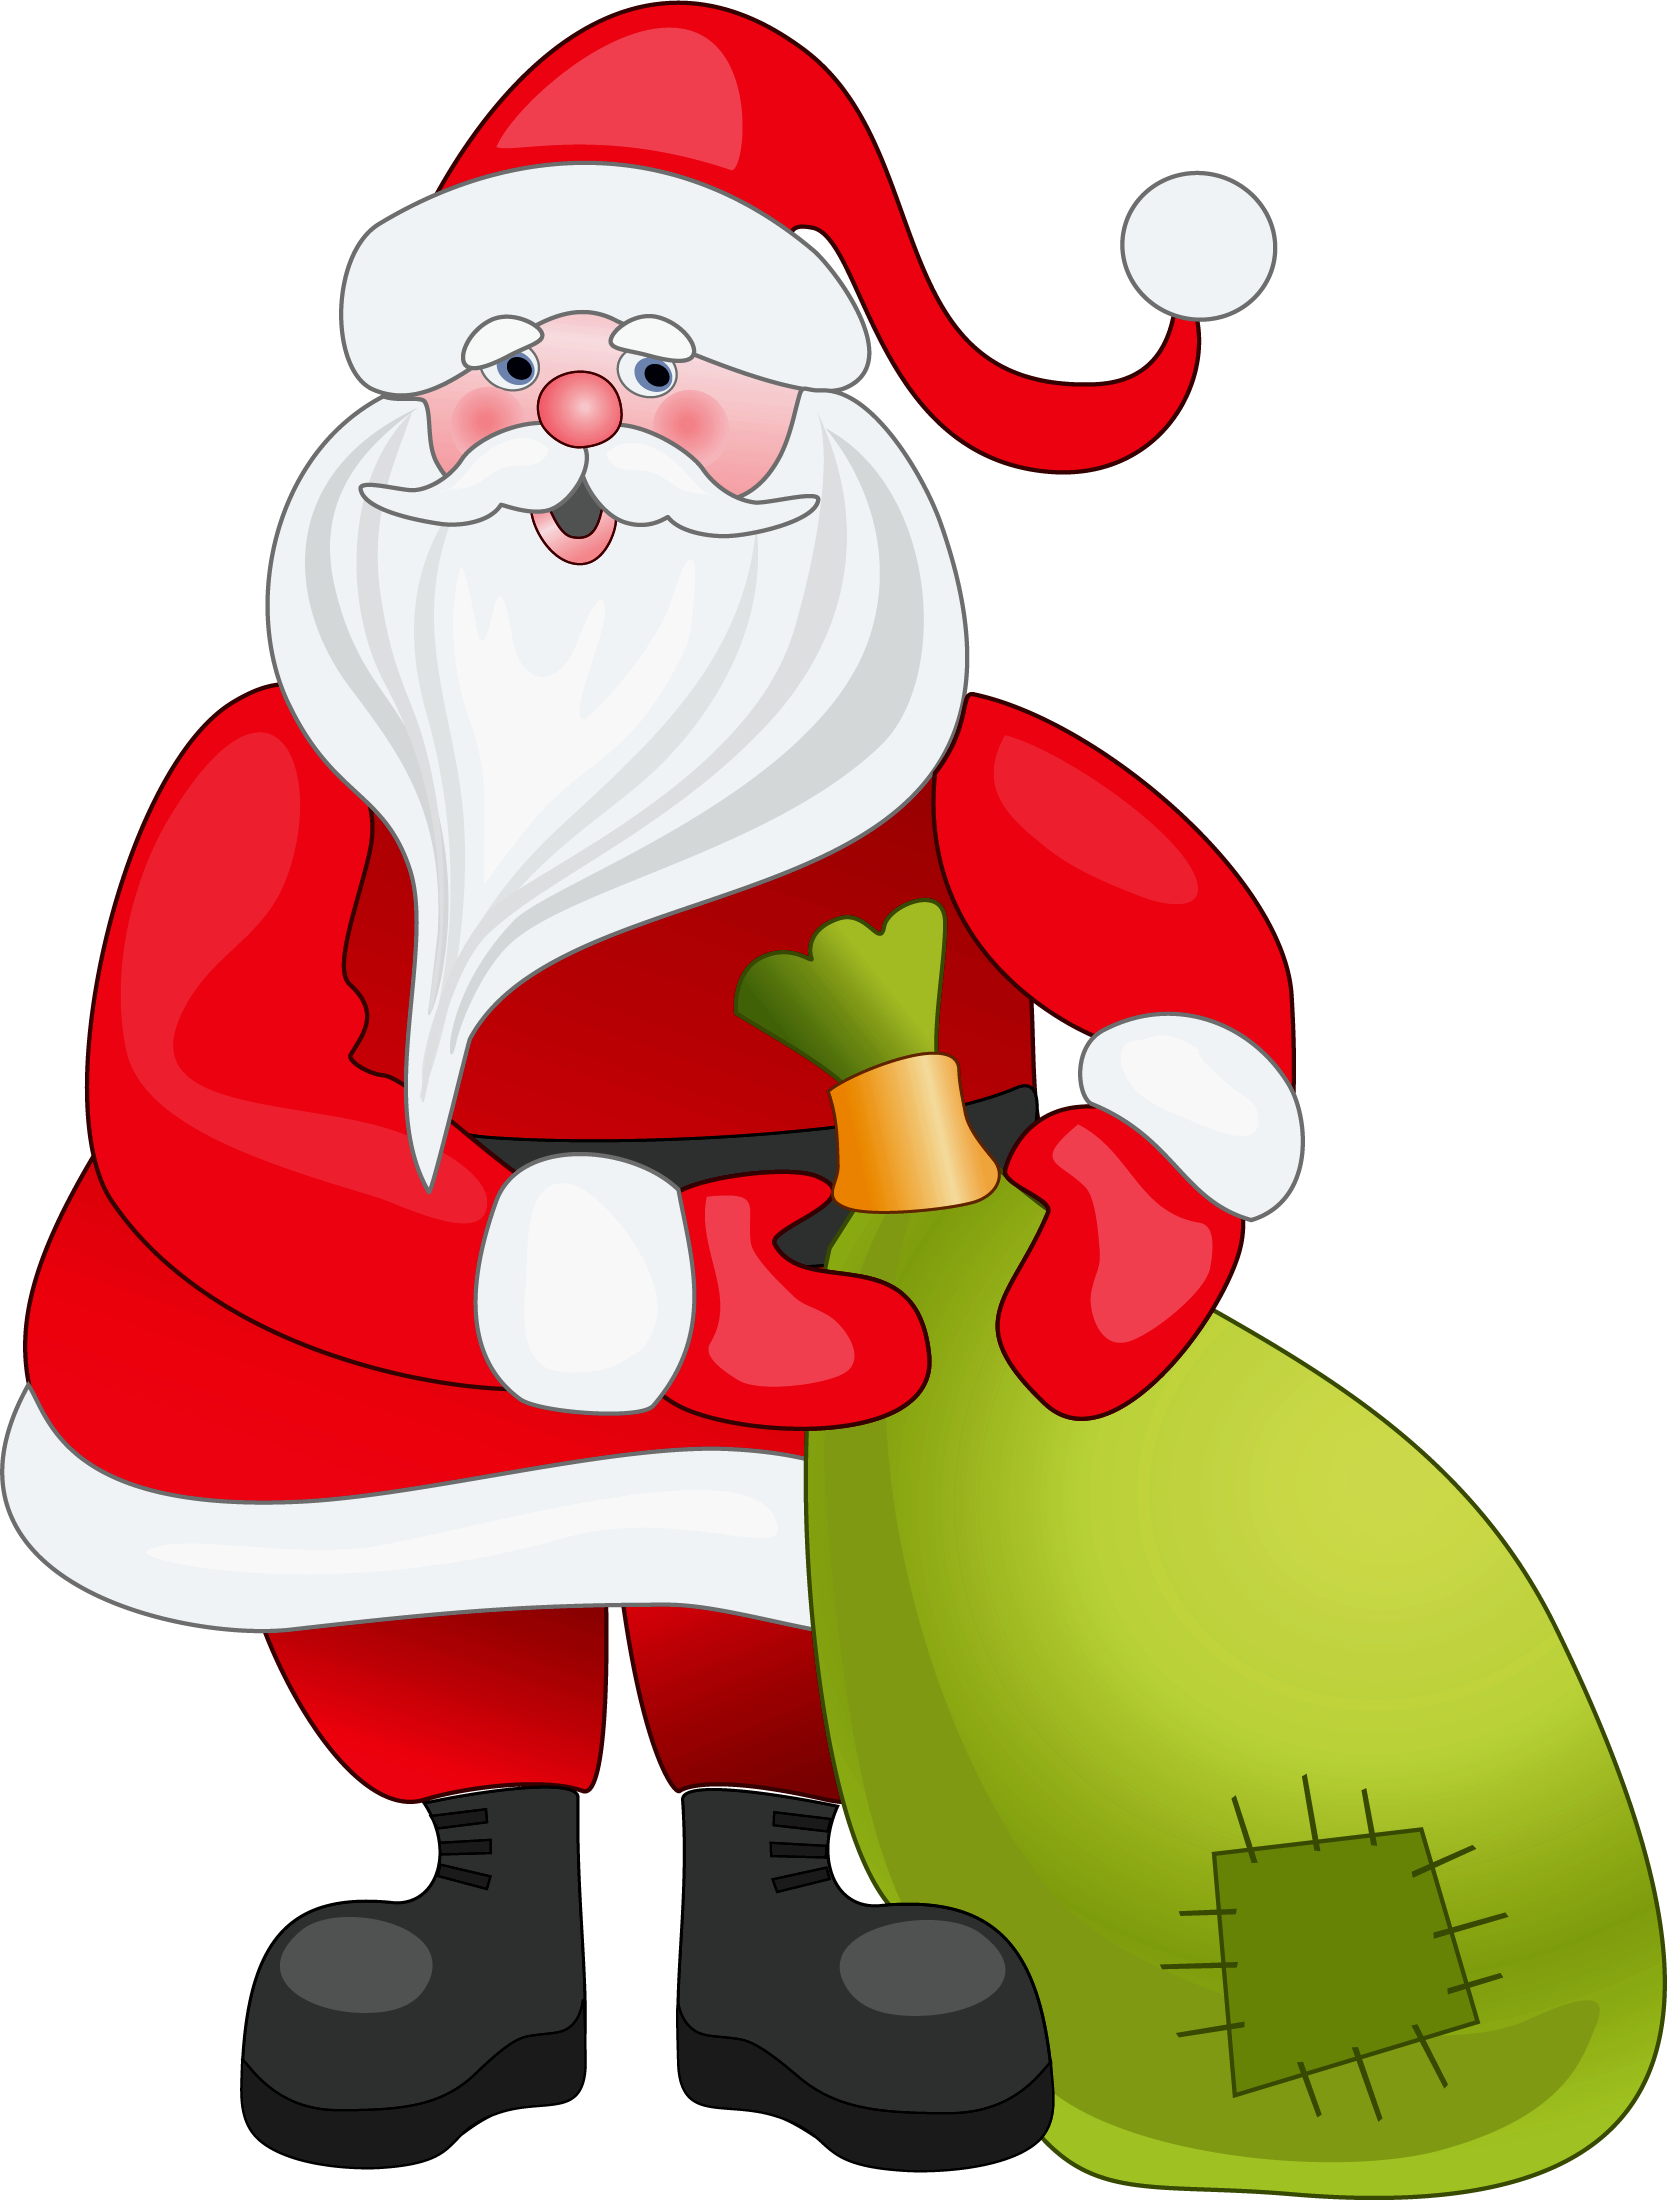 Gifts clipart santa claus. Png image pic for